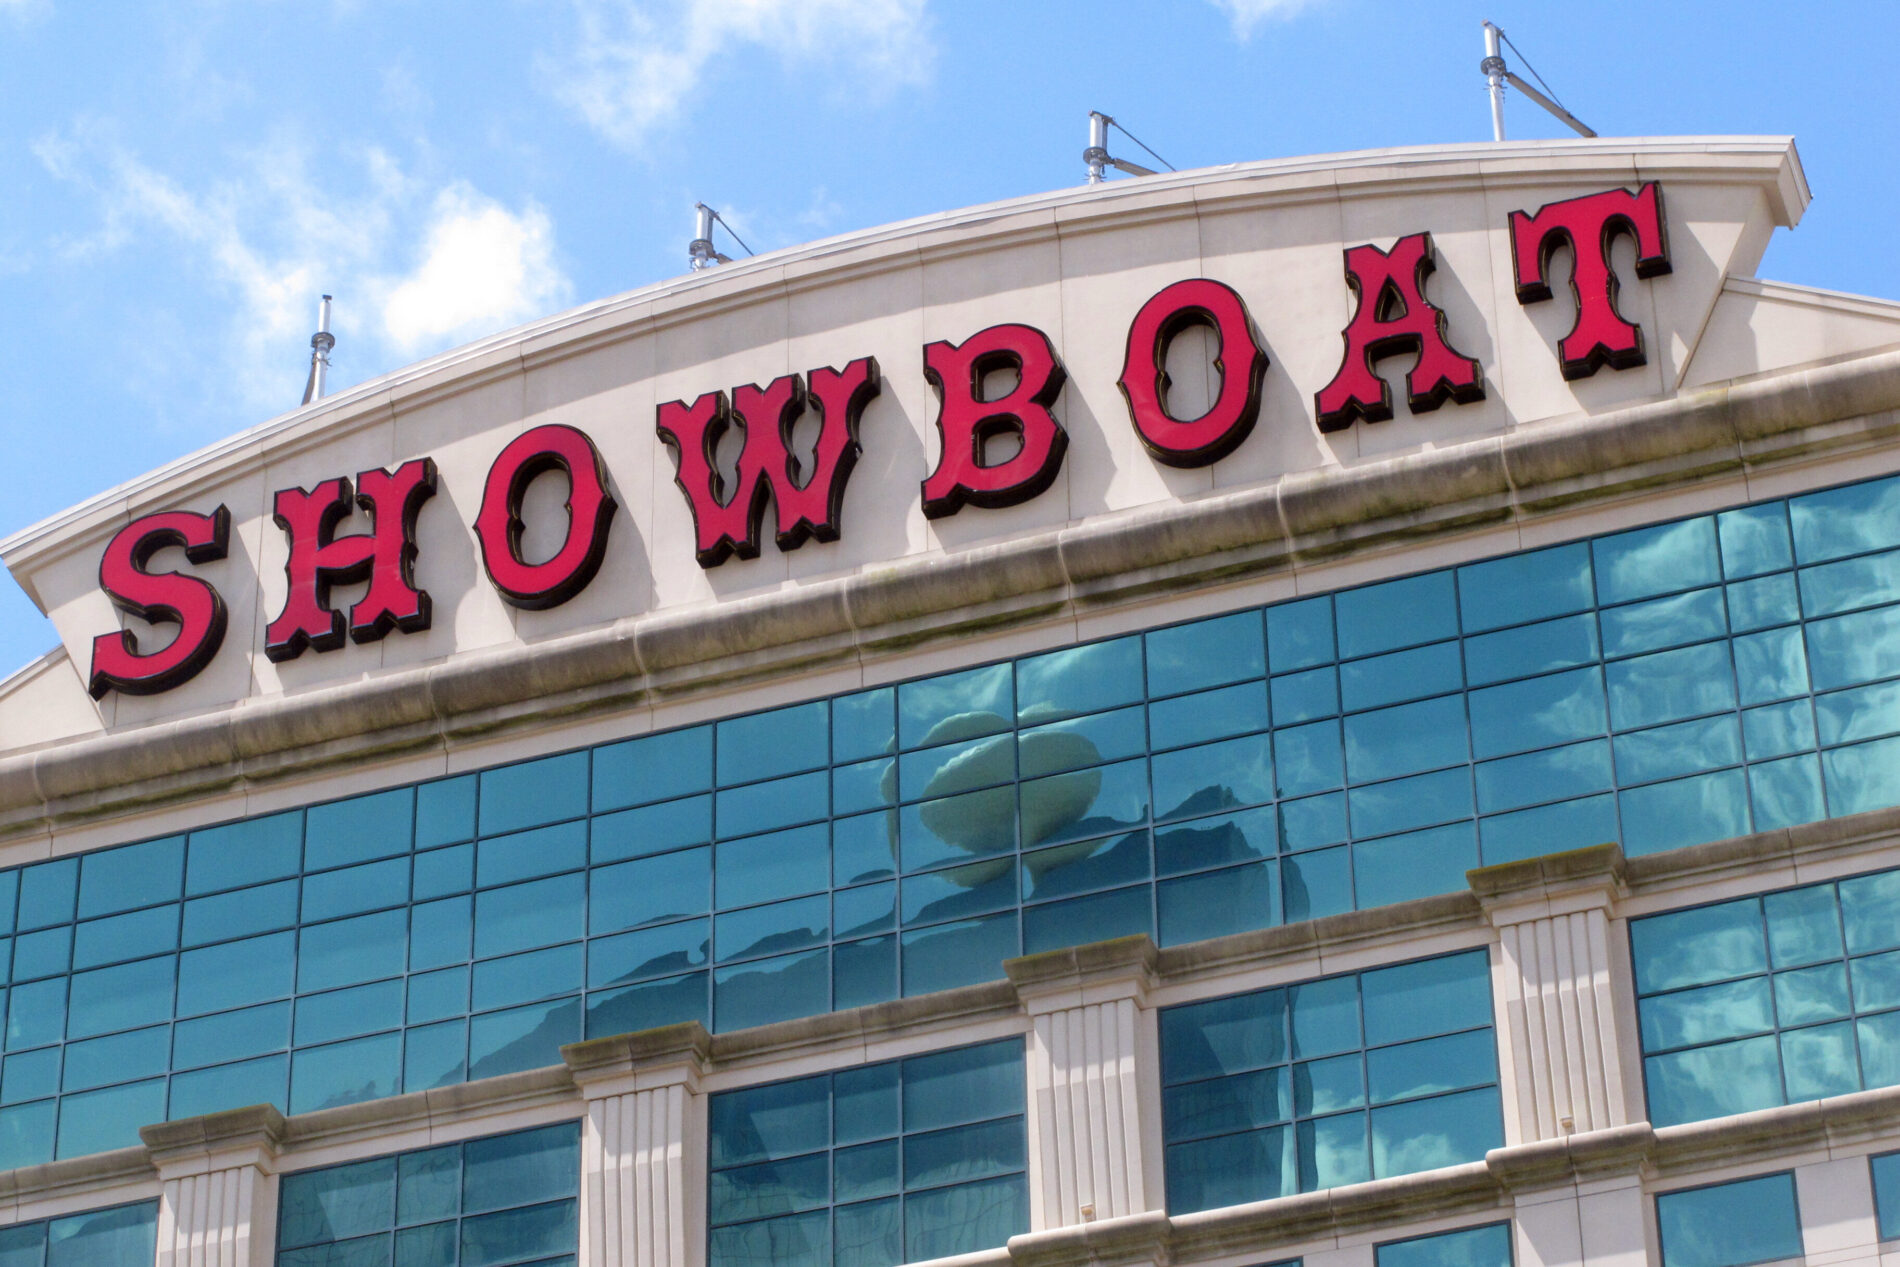 New atlantic city casino next to showboat channel casino online games